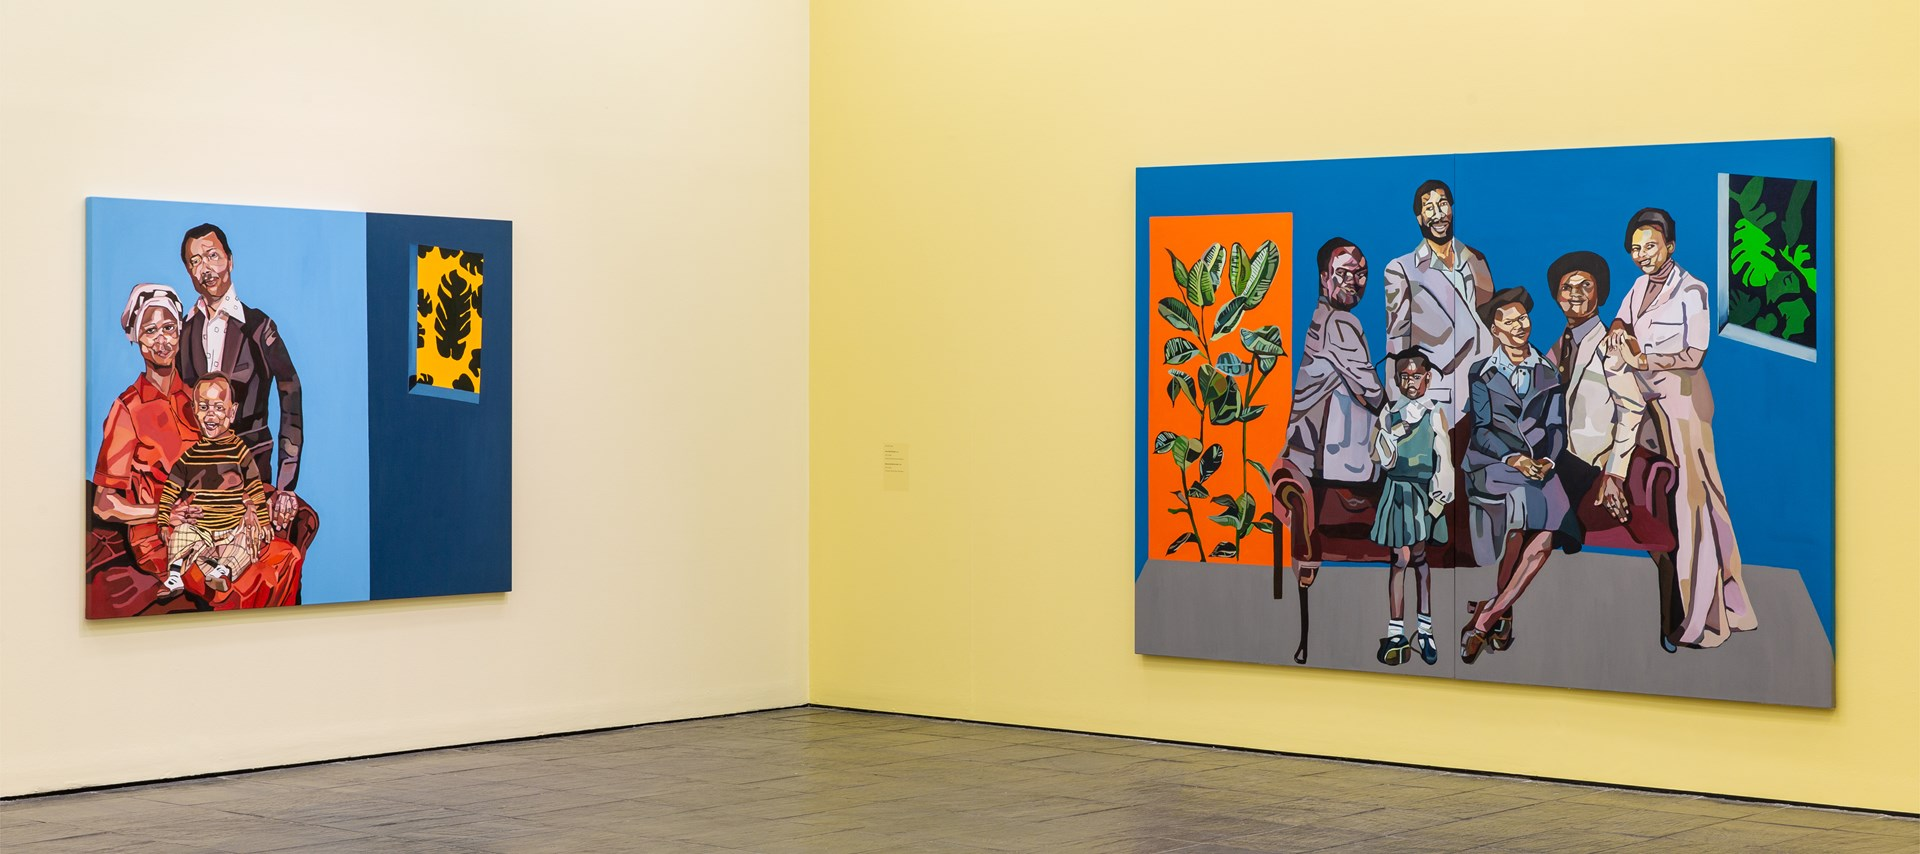 Joy Labinjo: Our histories cling to us: Installation View by Rob Harris. © BALTIC 2019